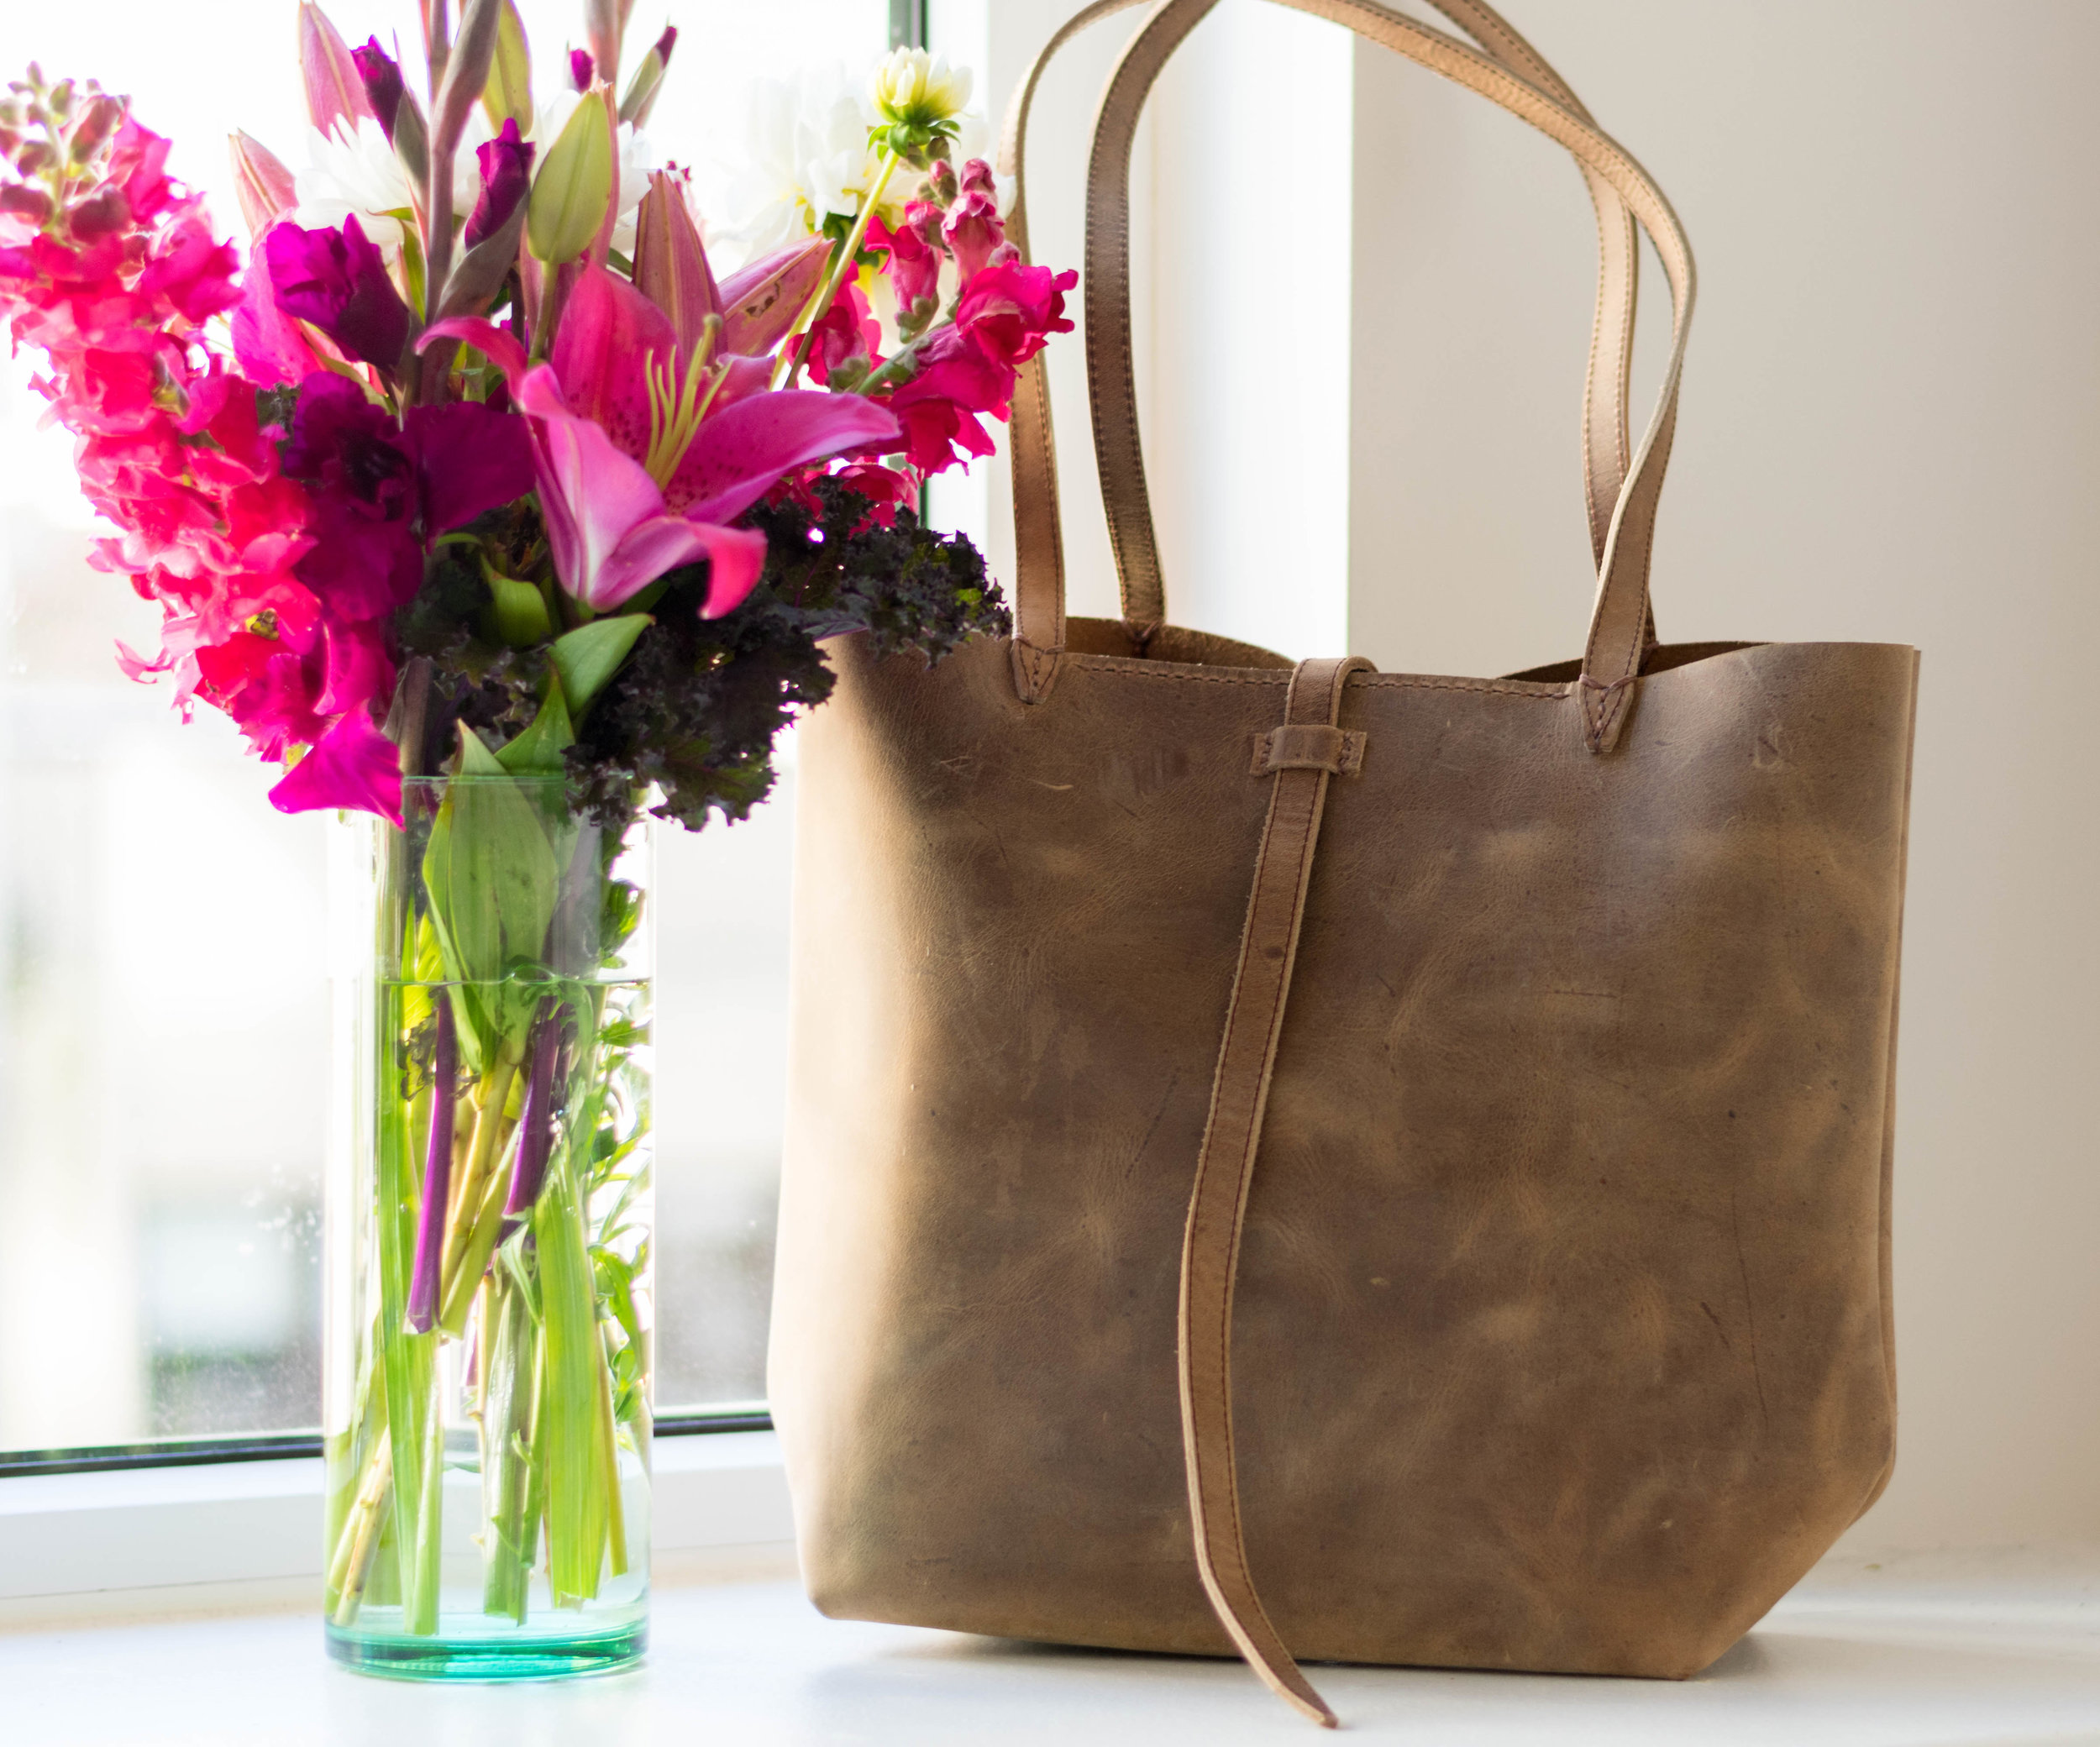 Featuring Stone  Ana Julia Tote by Lazarus Artisan Goods  + recycled glass vase from  Newly